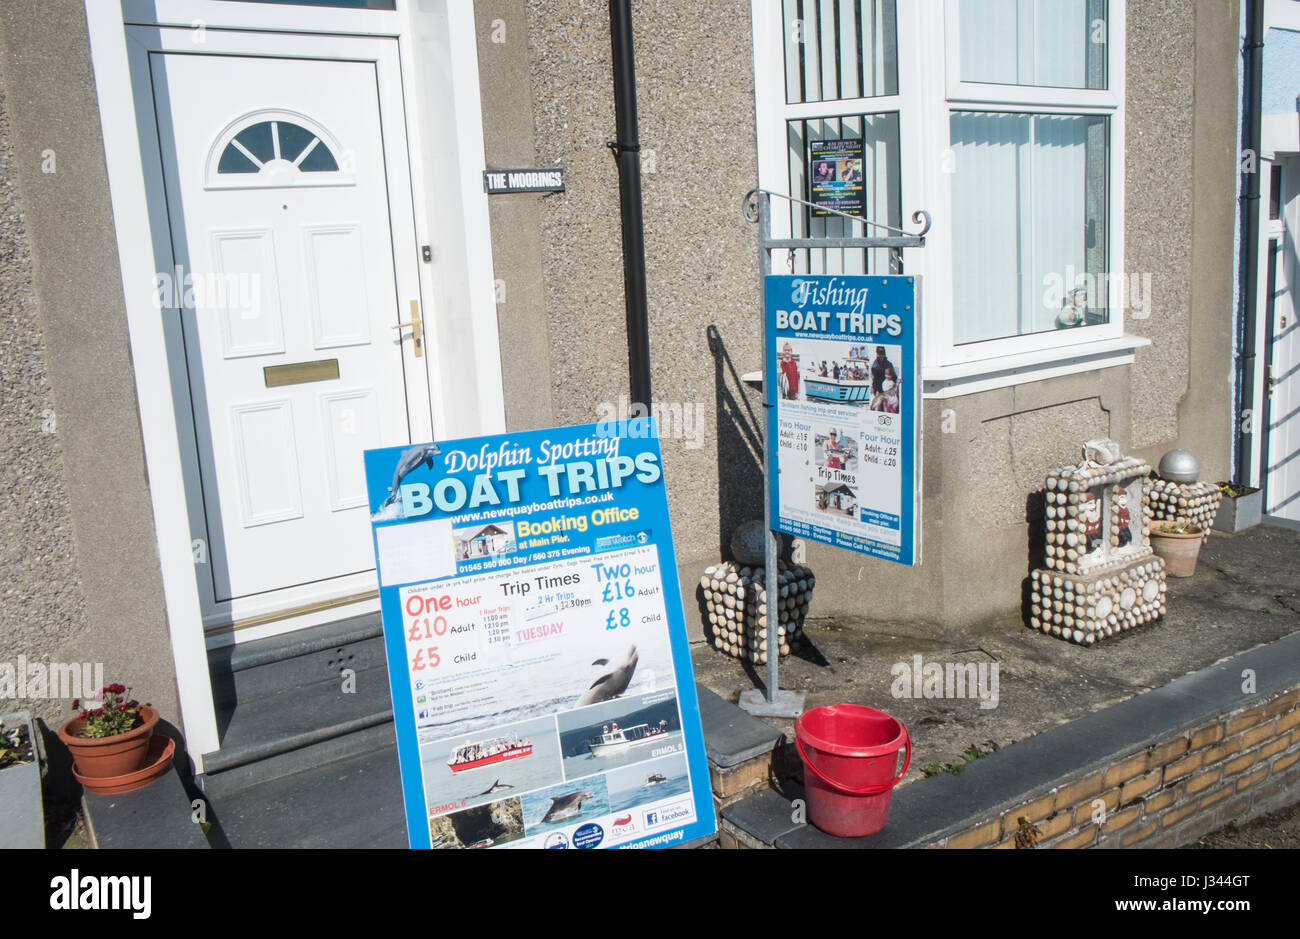 Signs,posters,adverts,publicity,for,fishing,trips,boat,trip,crab,dolphin,watching,New Quay,harbour,Cardigan Bay,Ceredigion,coast,West - Stock Image